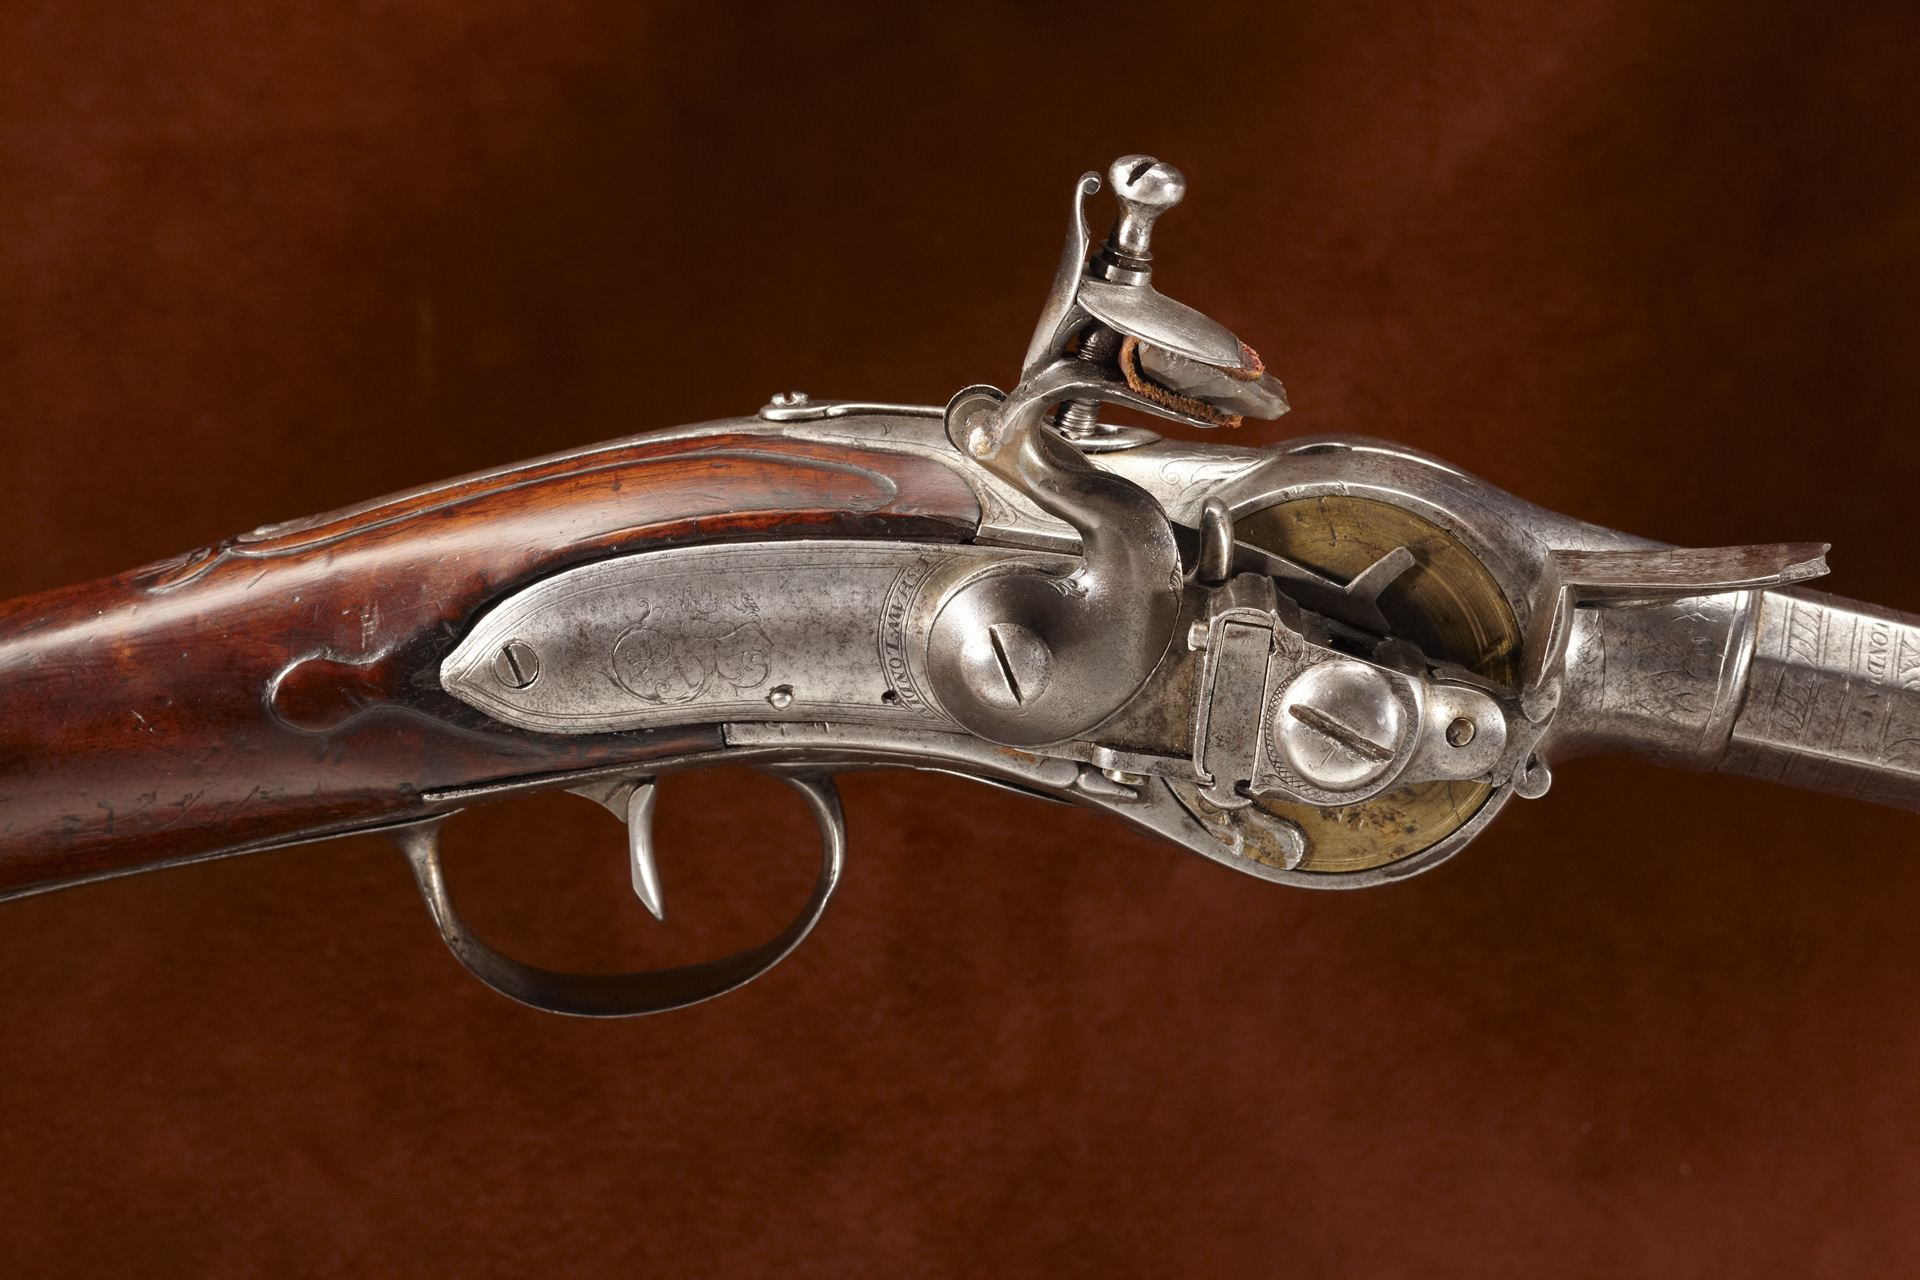 Cookson Volitional Repeating Flintlock